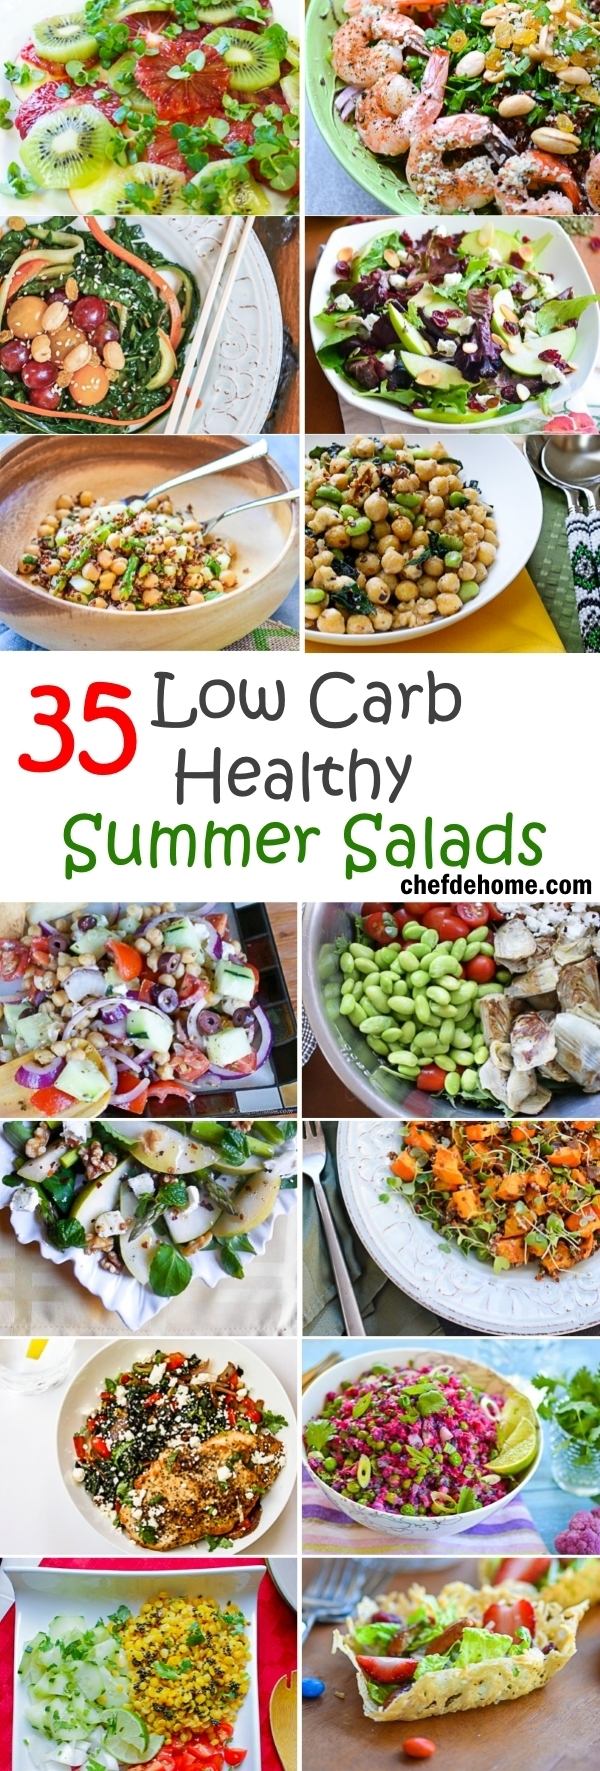 35 Low-Carb Healthy Summer Salads